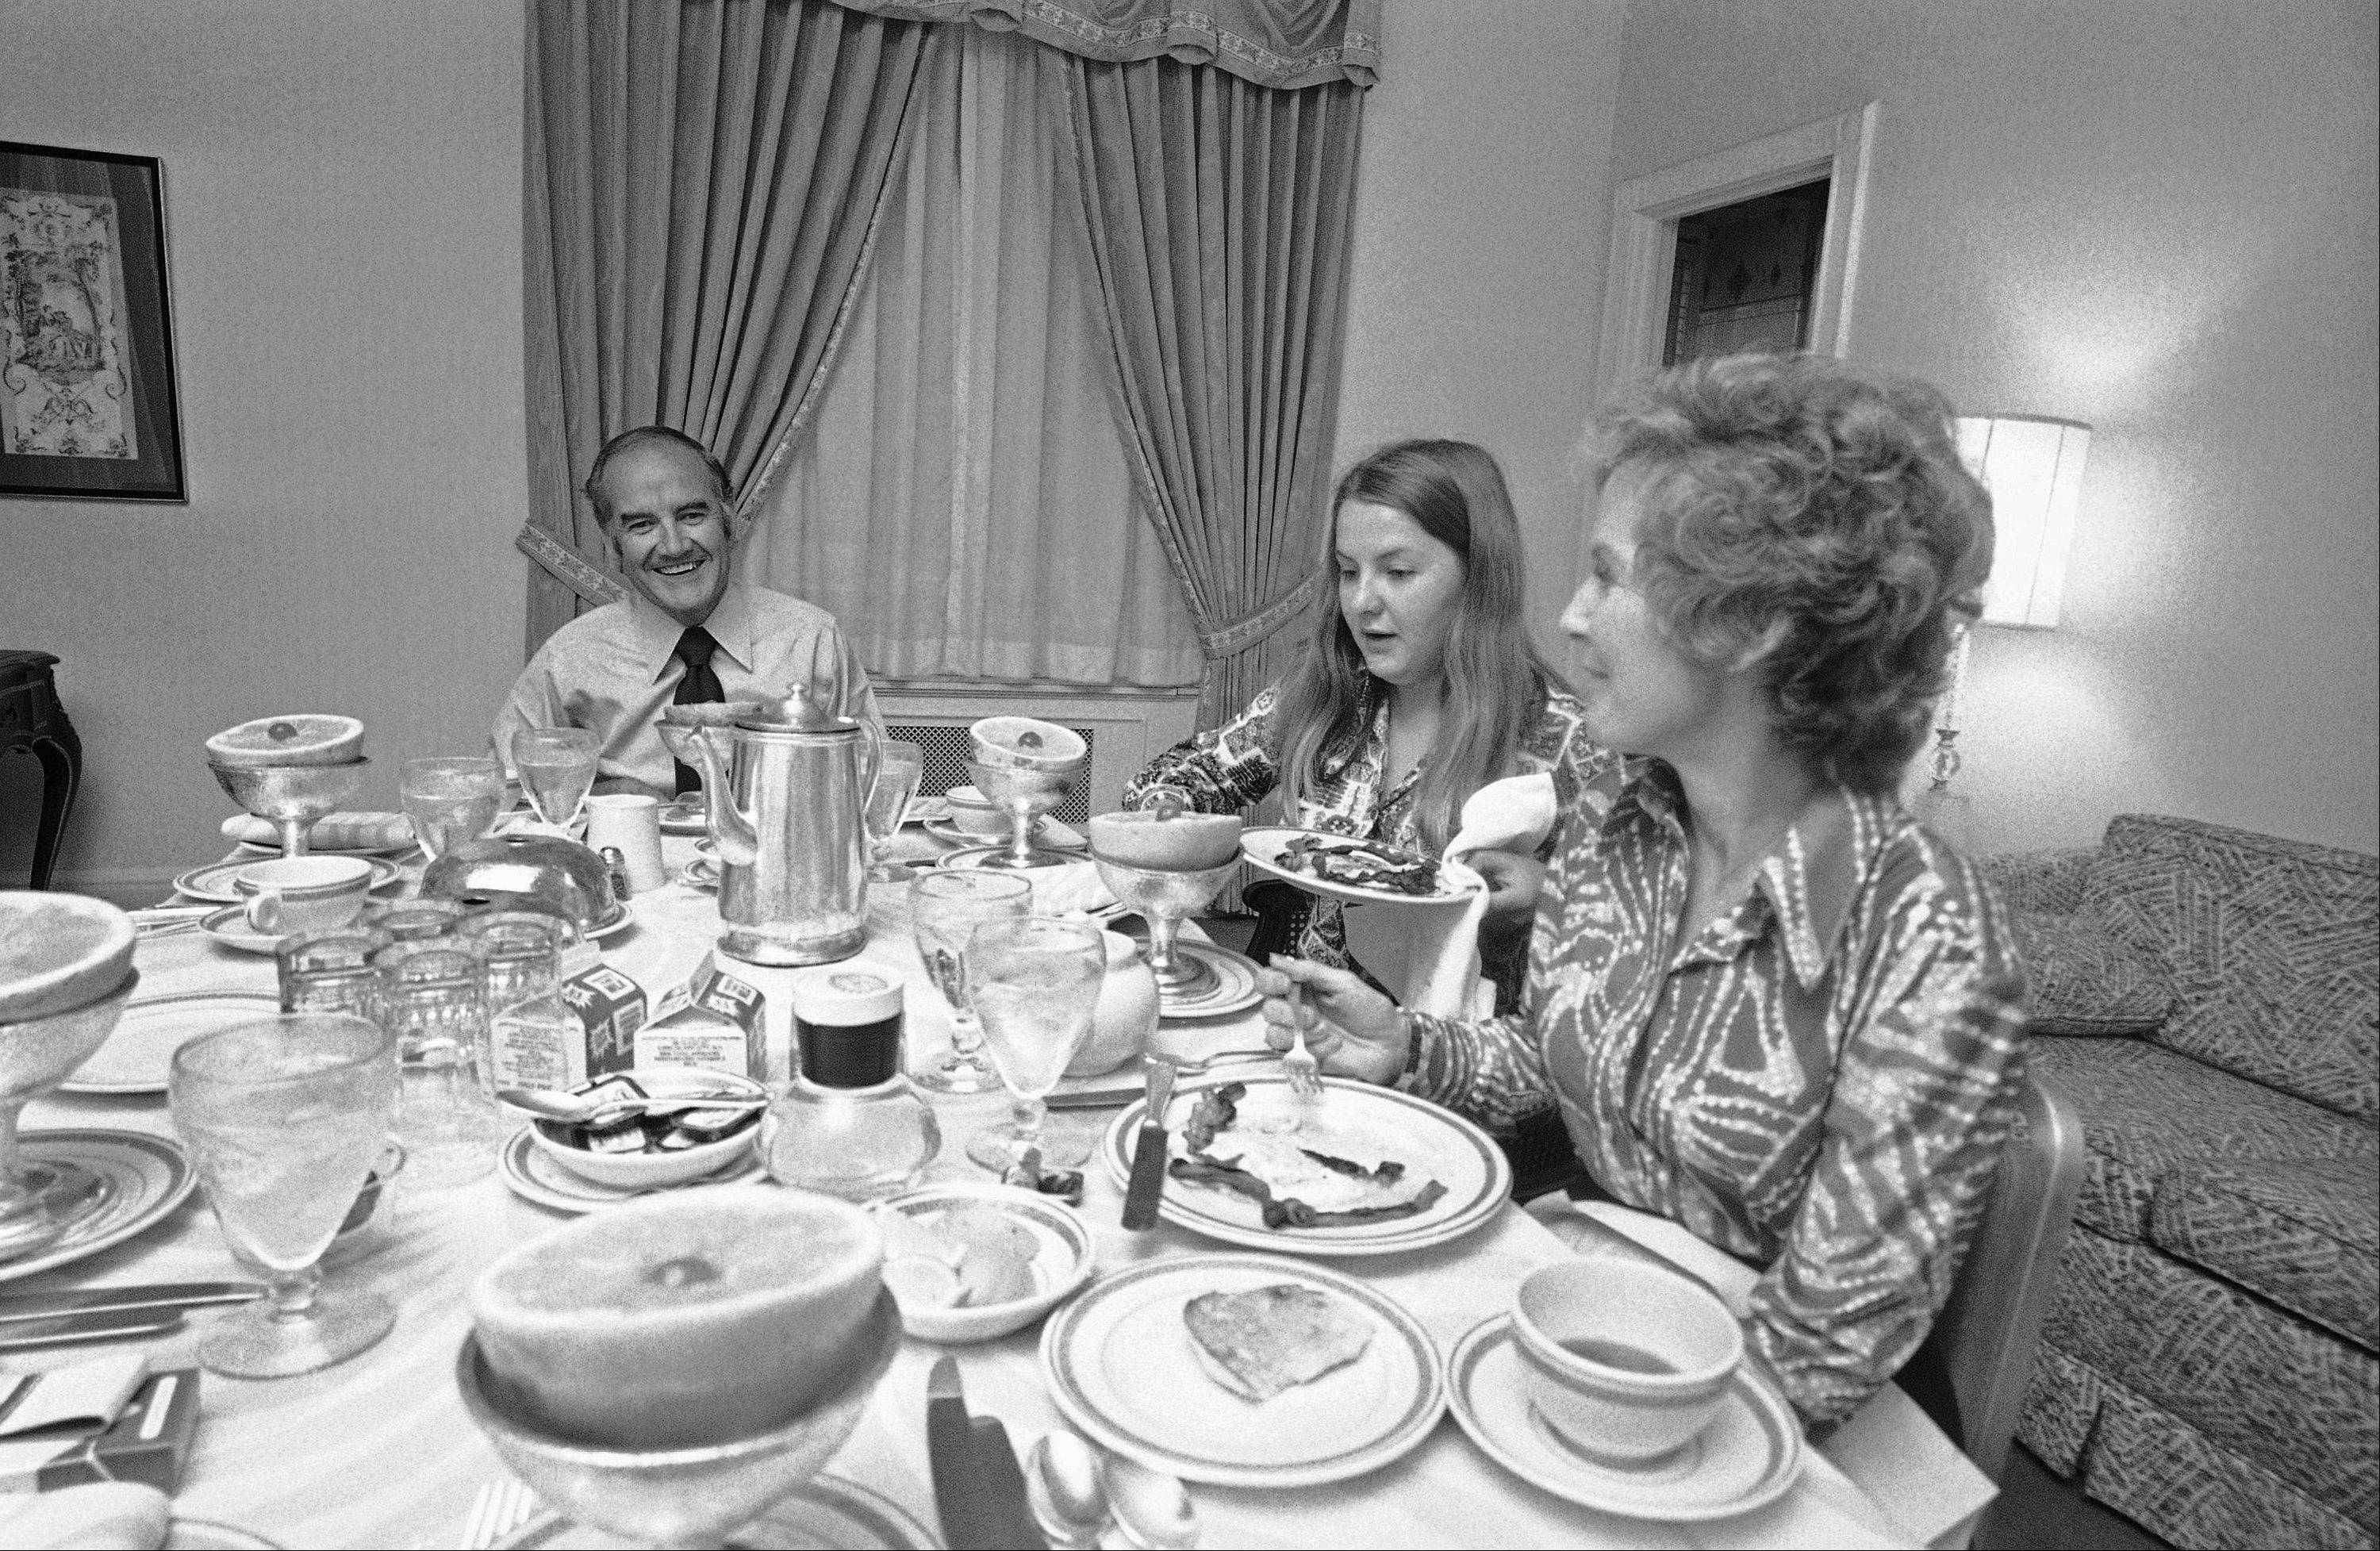 Sen. George McGovern, Democratic presidential candidate, has breakfast with his daughter Terry, center, and his wife Eleanor, Wednesday, June 21, 1972, at his hotel Biltmore headquarters in New York following primary victory in New York State.